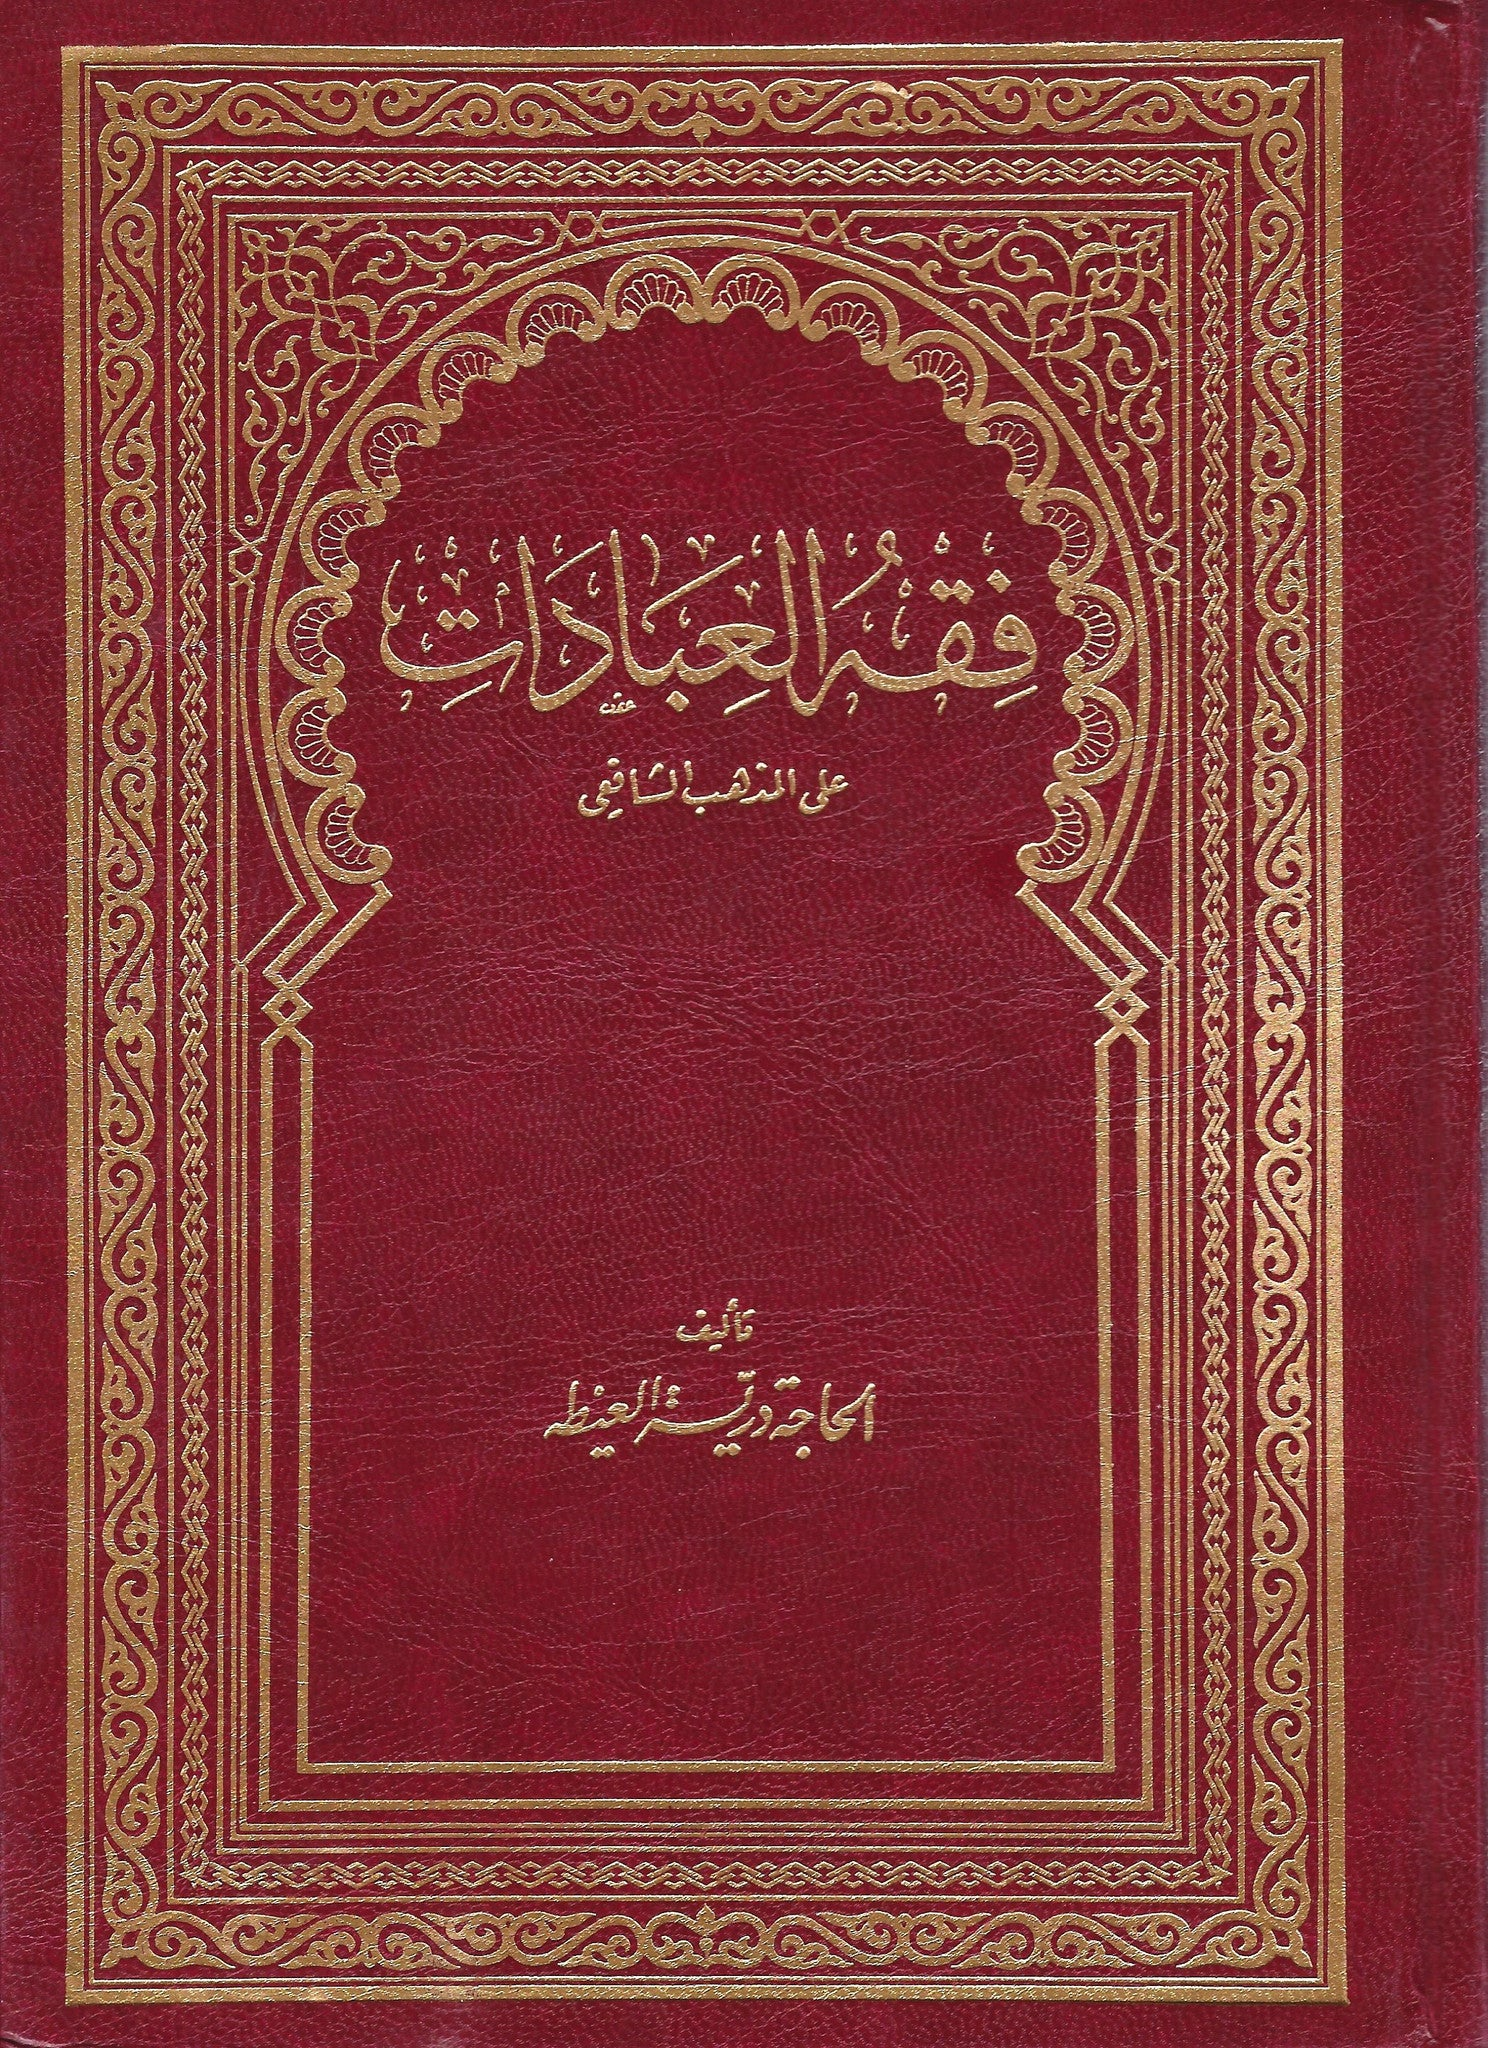 Fiqh al-Ibadat in the Shafi'i madhhab - Arabic كتاب فقه العبادات Large, Shaam - Daybreak International Bookstore, Daybreak Press Global Bookshop  - 1